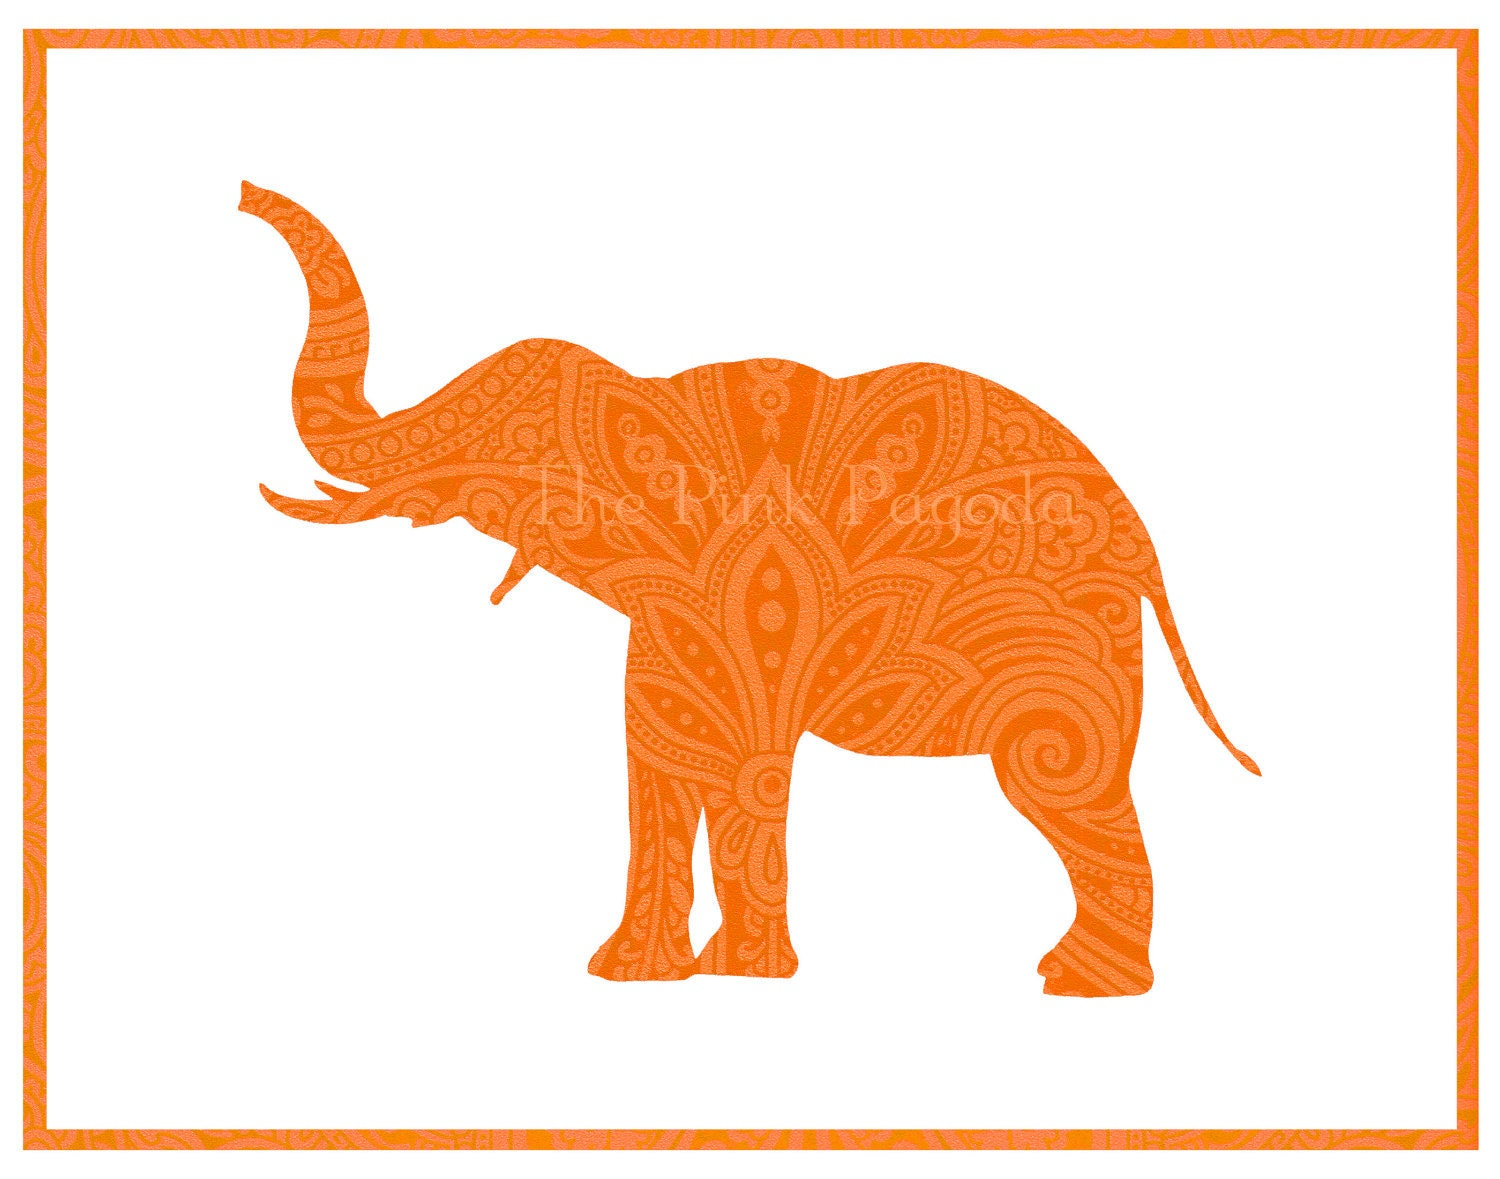 Tangerine Paisley Indian Elephant Silhouette by thepinkpagoda